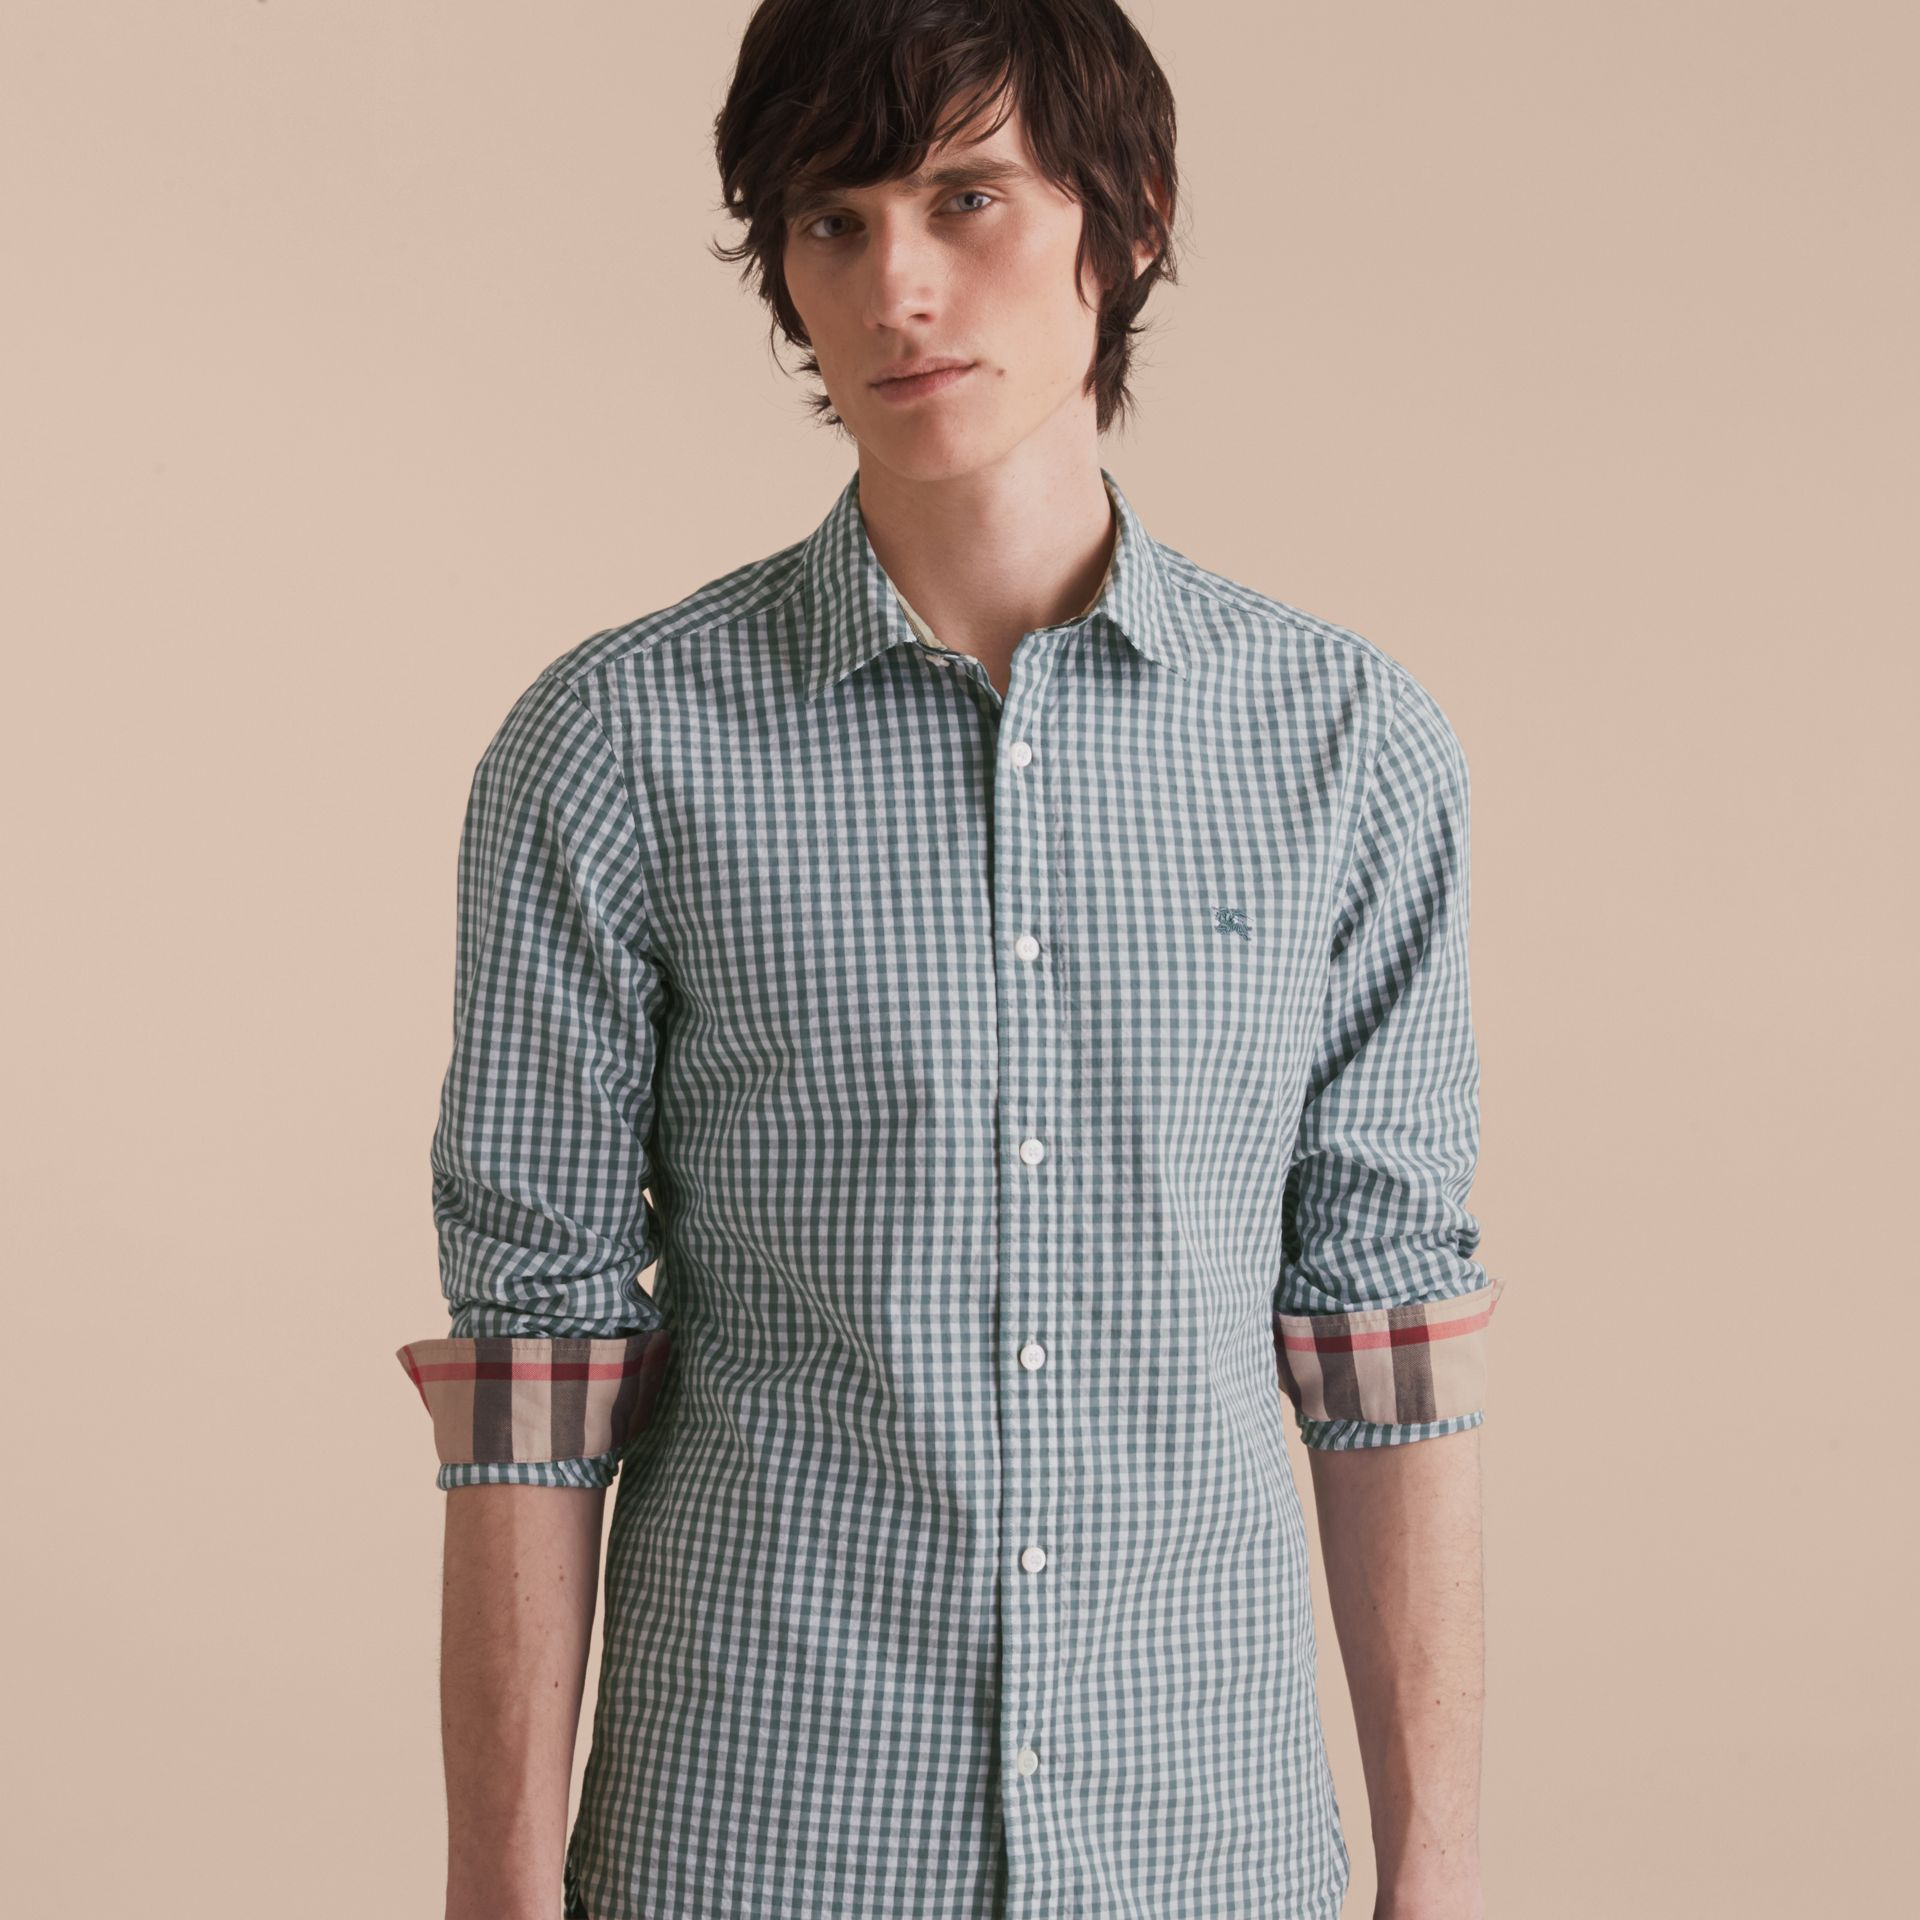 Gingham Cotton Poplin Shirt with Check Detail in Dusty Teal Blue - Men | Burberry Singapore - gallery image 6